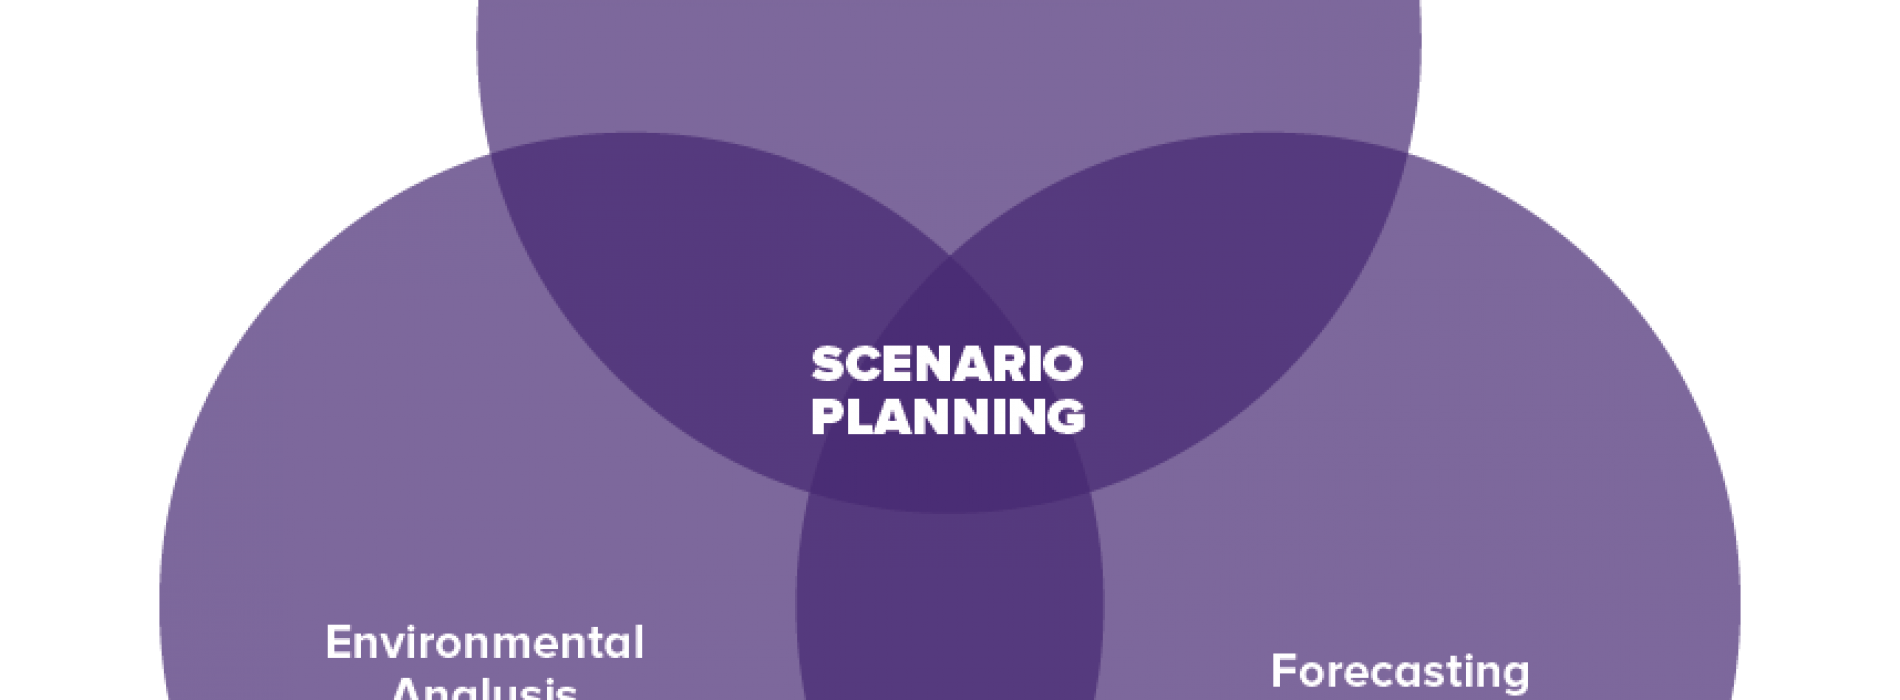 Managing your future through scenario planning